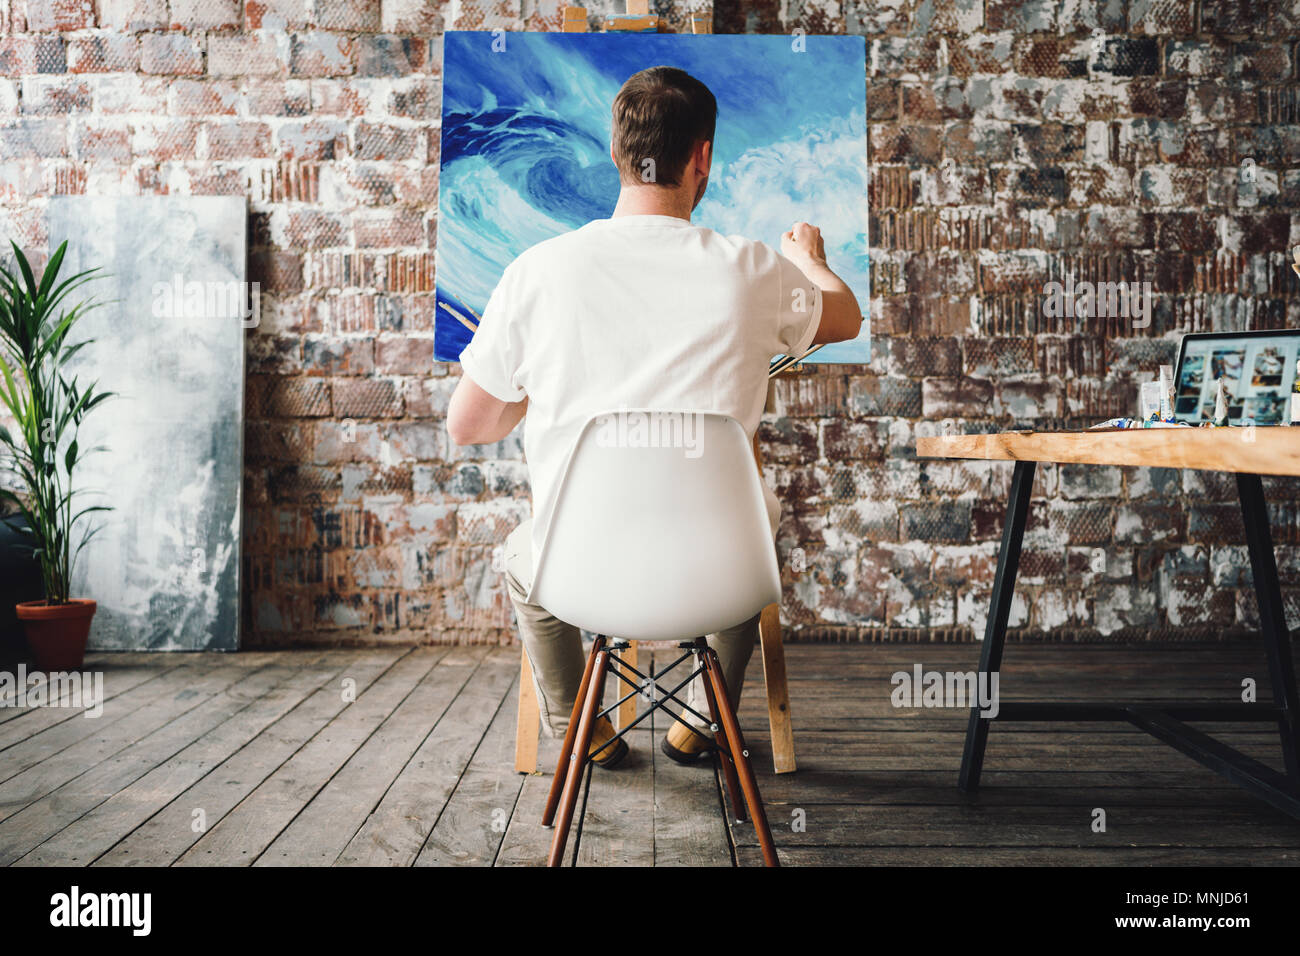 Professional painter sits on chair in front of easel with canvas, hold paintbrush in hand and drawing oil painting. Artist working process in studio.  Stock Photo